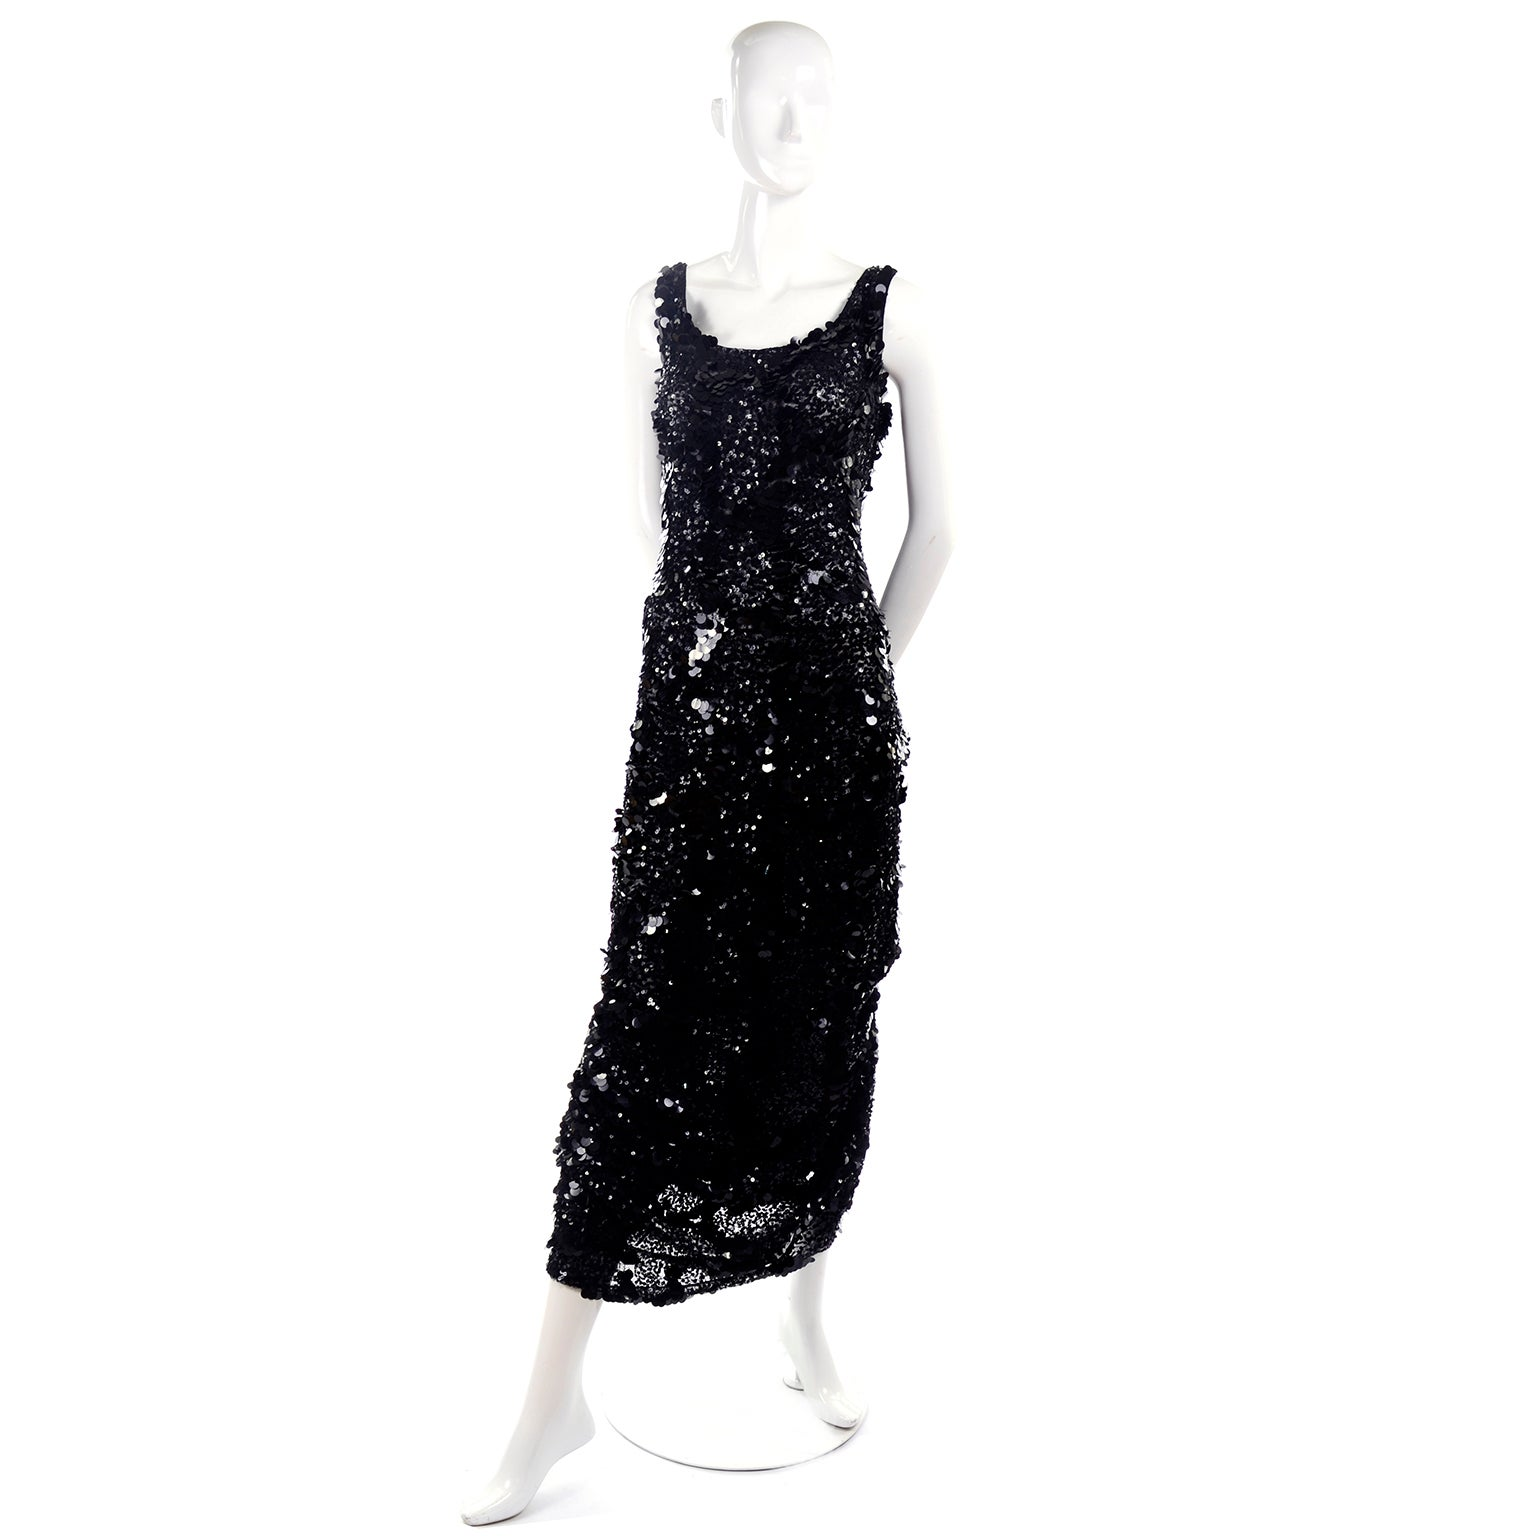 19c38d4bf0f Vintage Evening Dress in Black W Sequins and Paillettes with Train and  Bustle For Sale at 1stdibs